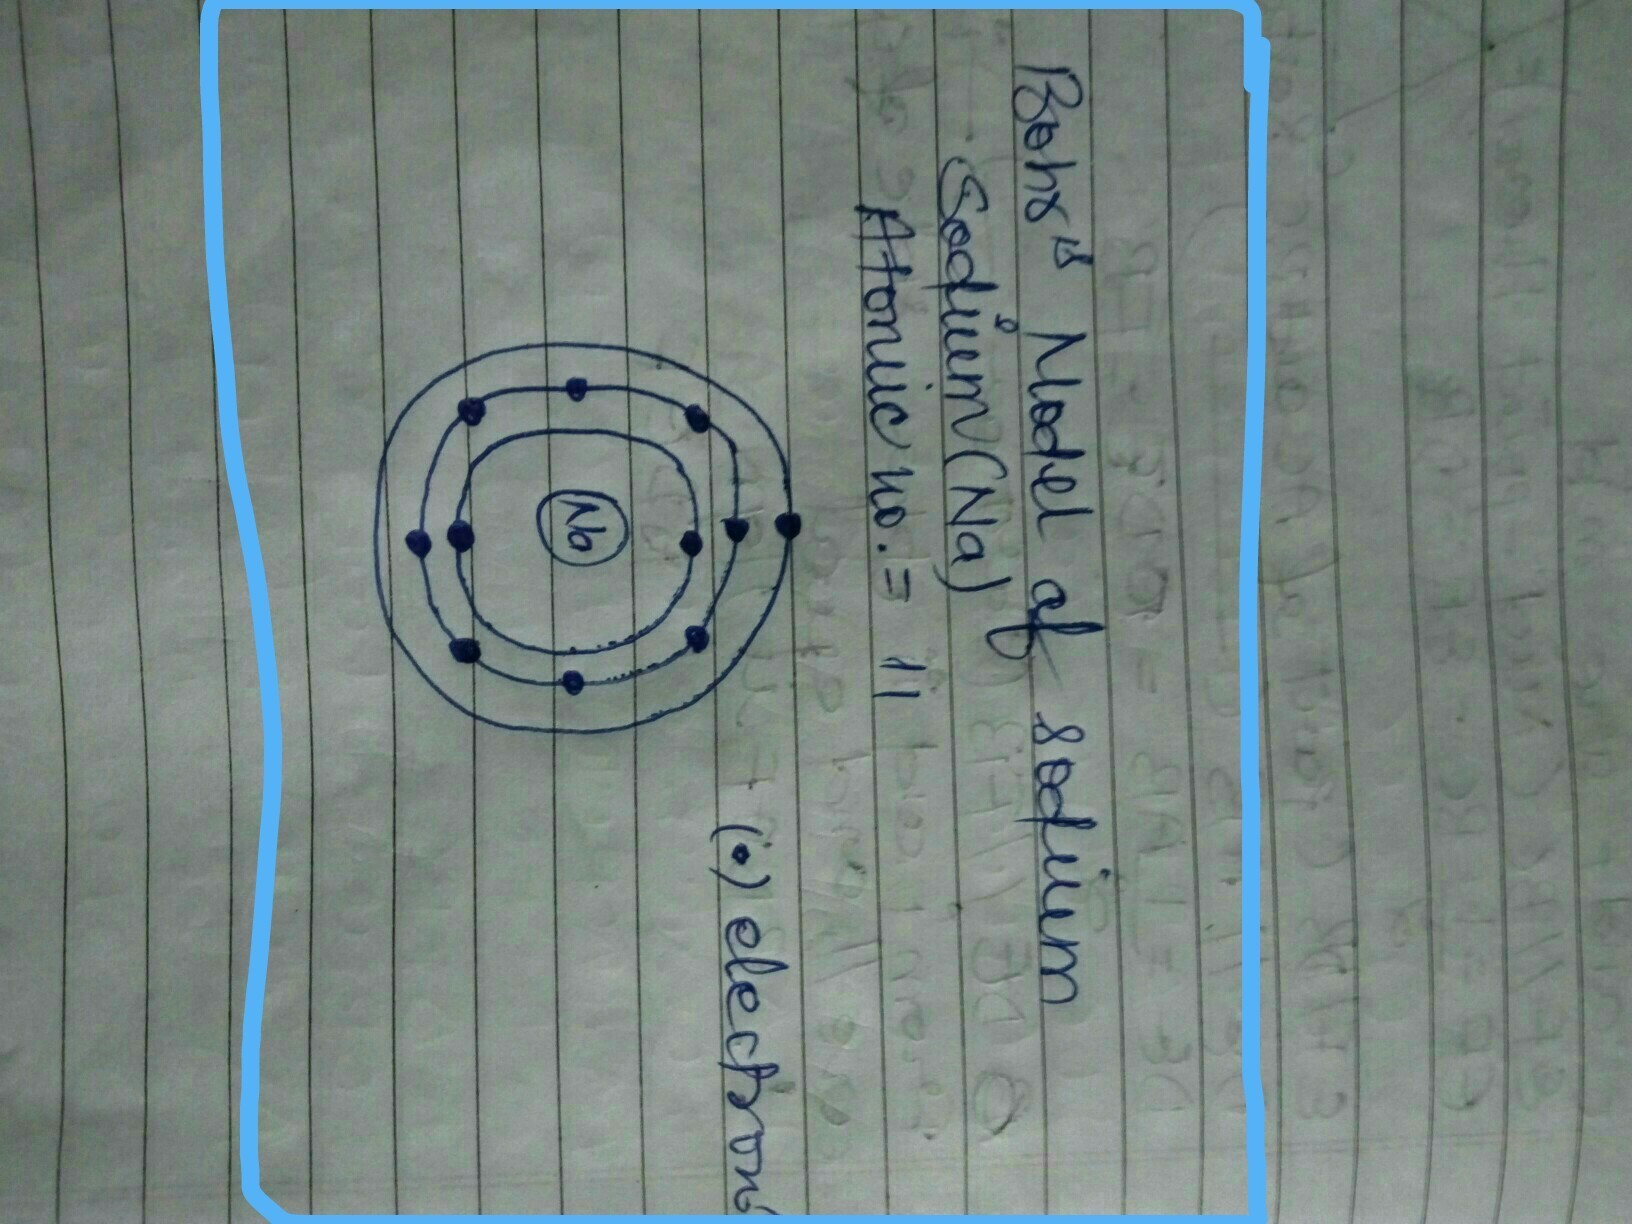 hight resolution of this is the bohr model of sodium atom